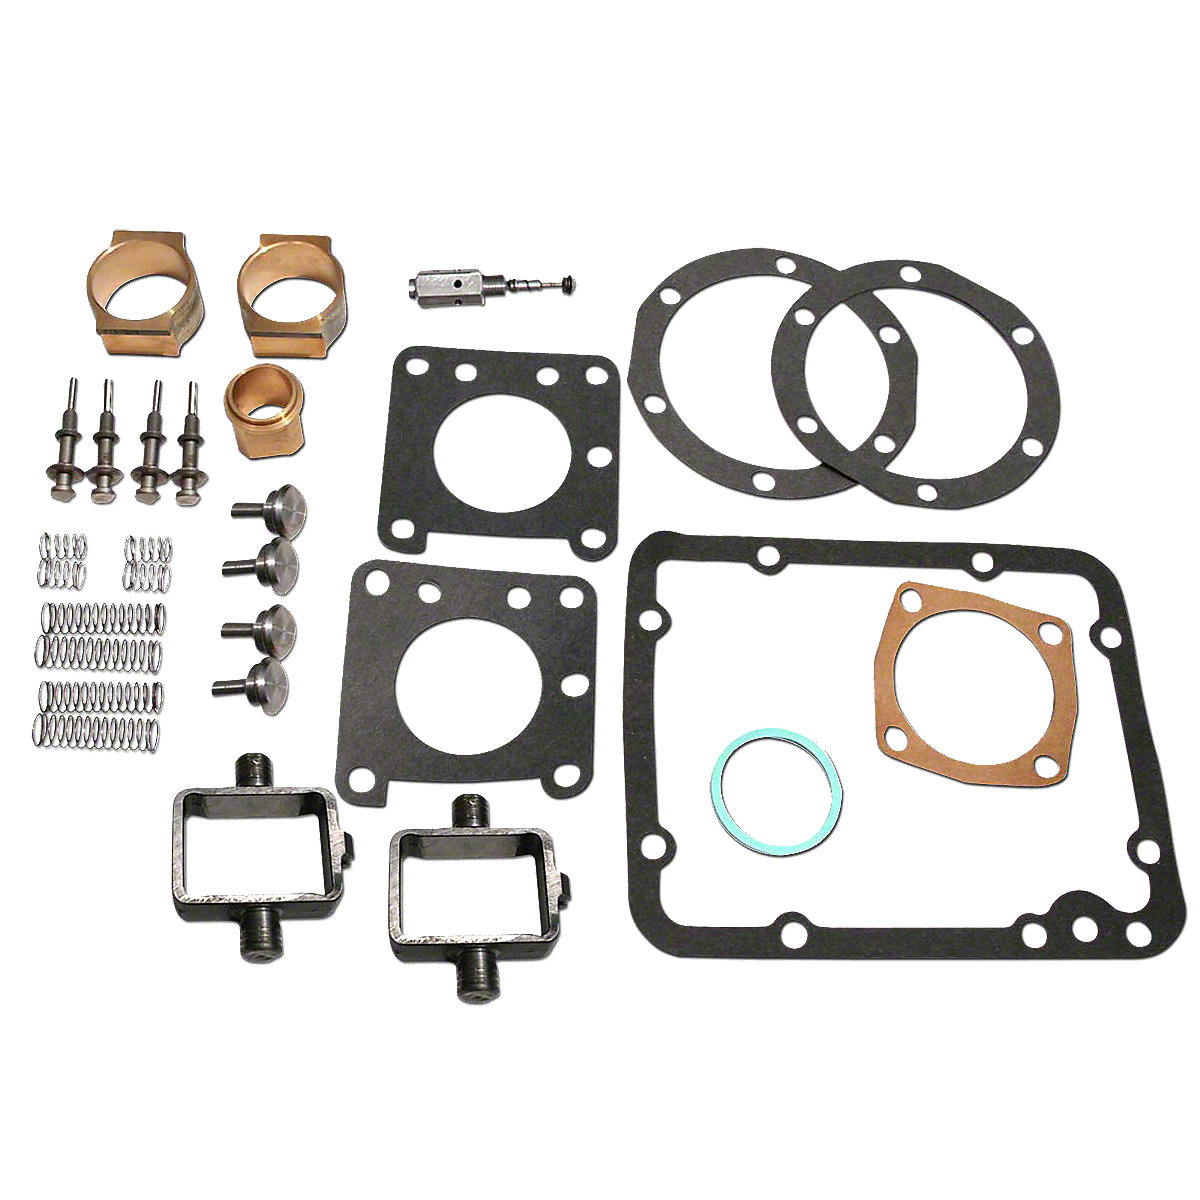 FDS153 Hydraulic Pump Rebuild Kit Basic